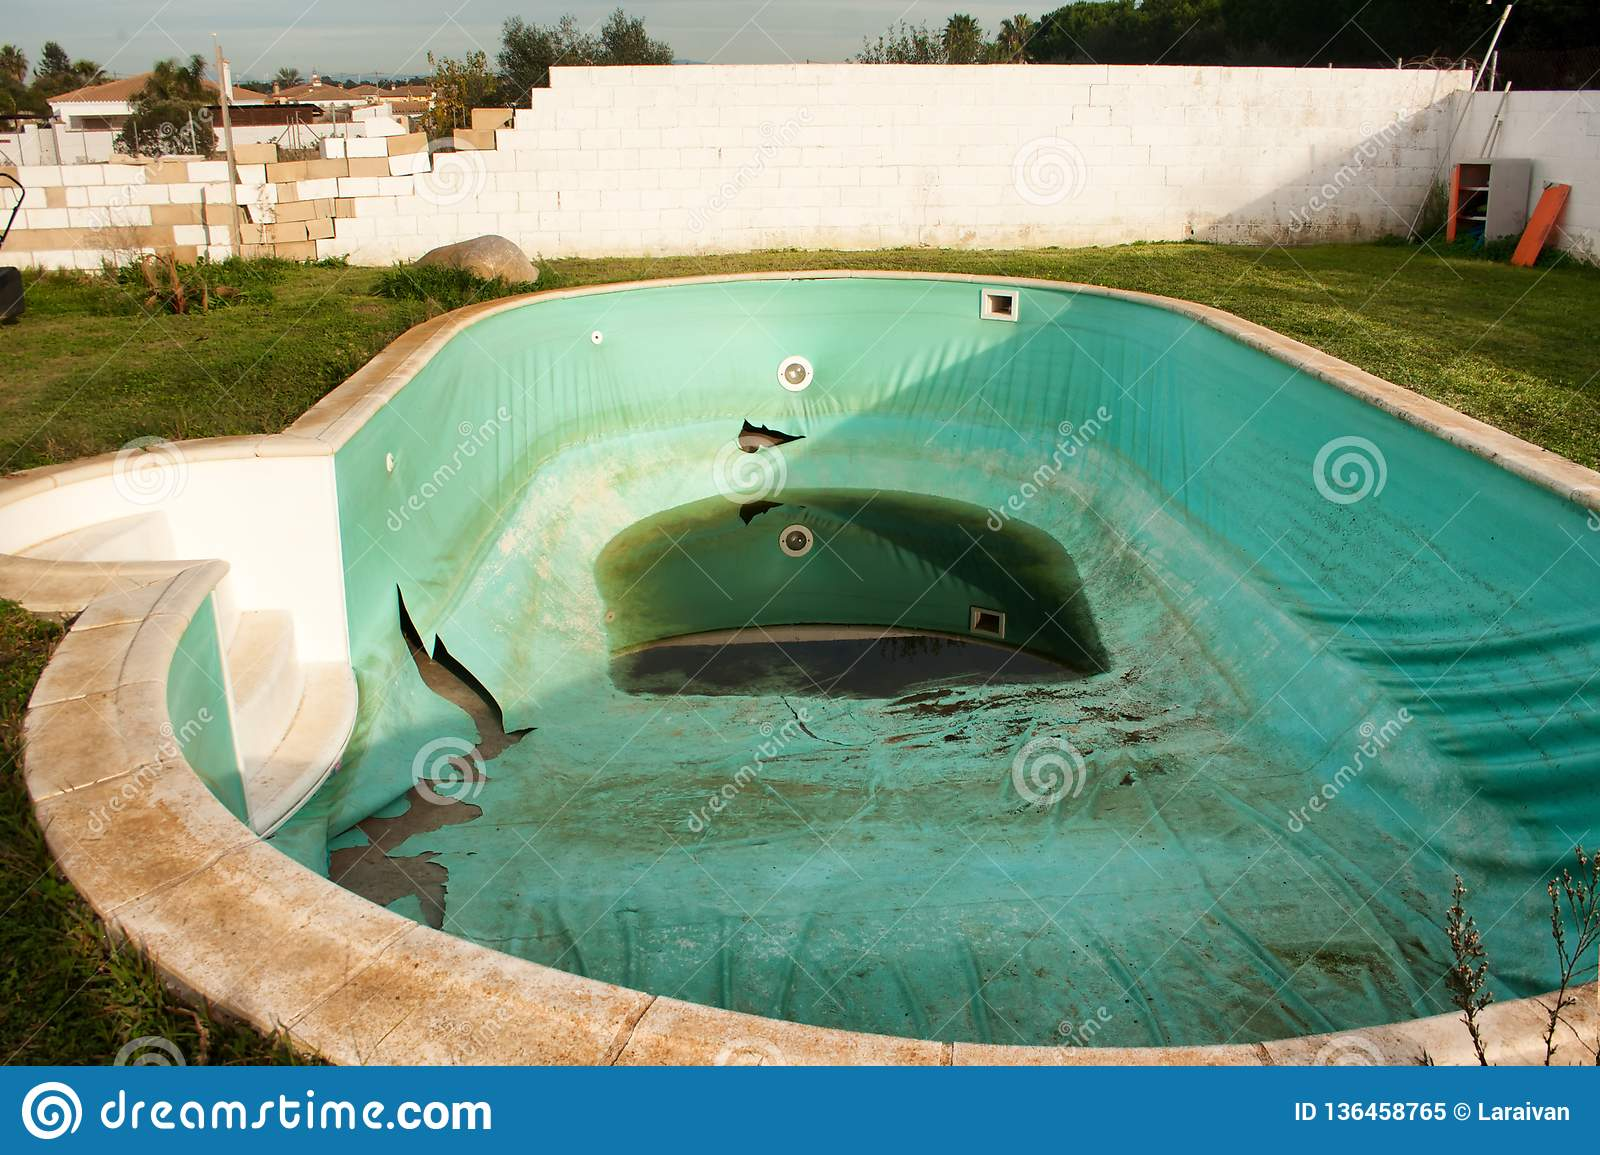 Abandoned Pool In A Private House Stock Image Image Of Drought Blue 136458765